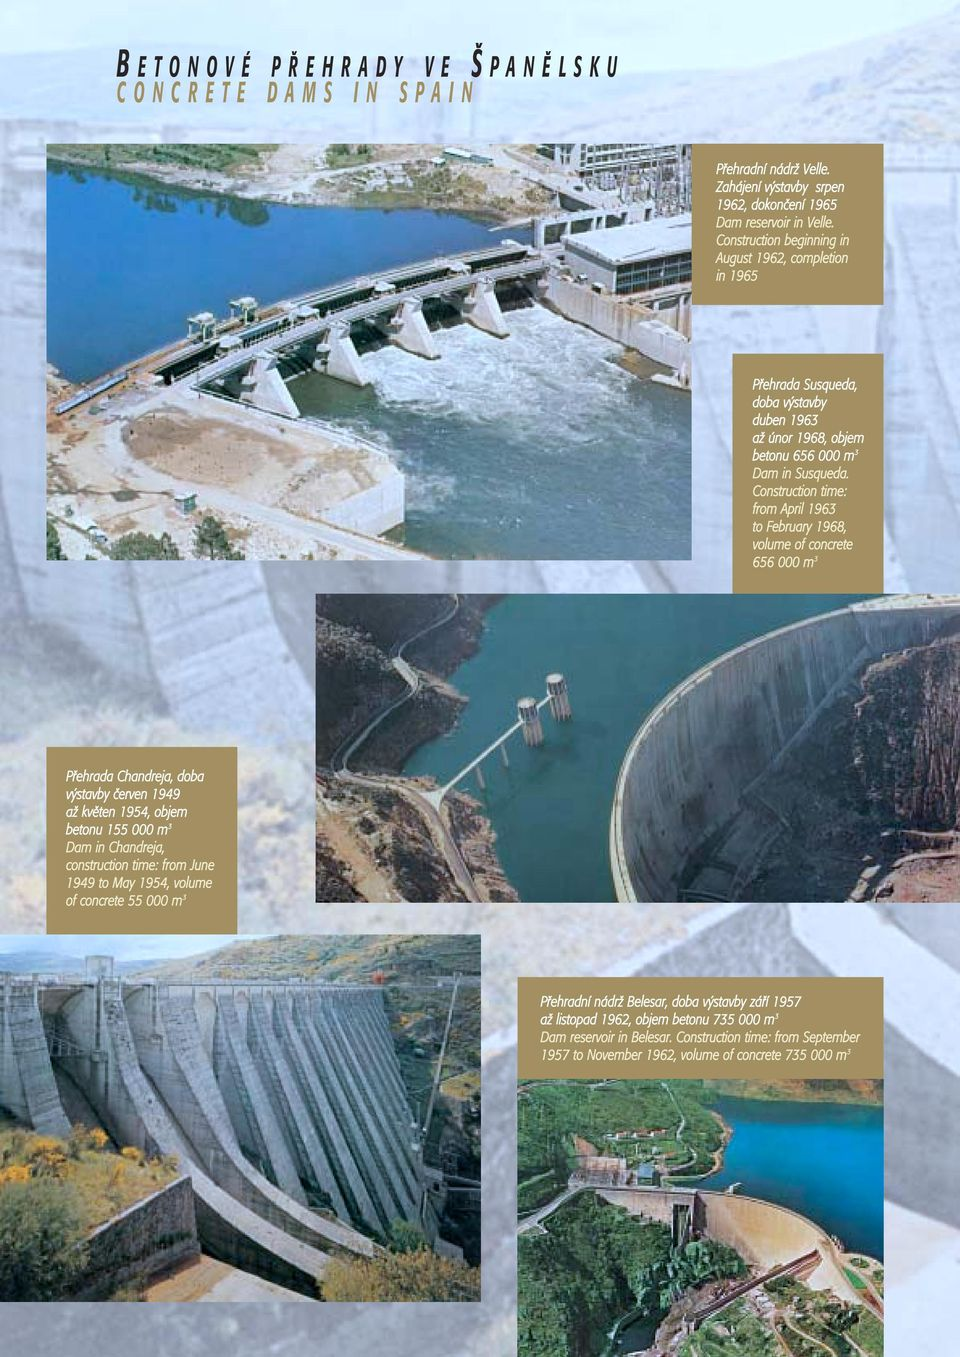 Construction time: from April 1963 to February 1968, volume of concrete 656 000 m 3 Pfiehrada Chandreja, doba v stavby ãerven 1949 aï kvûten 1954, objem betonu 155 000 m 3 Dam in Chandreja,